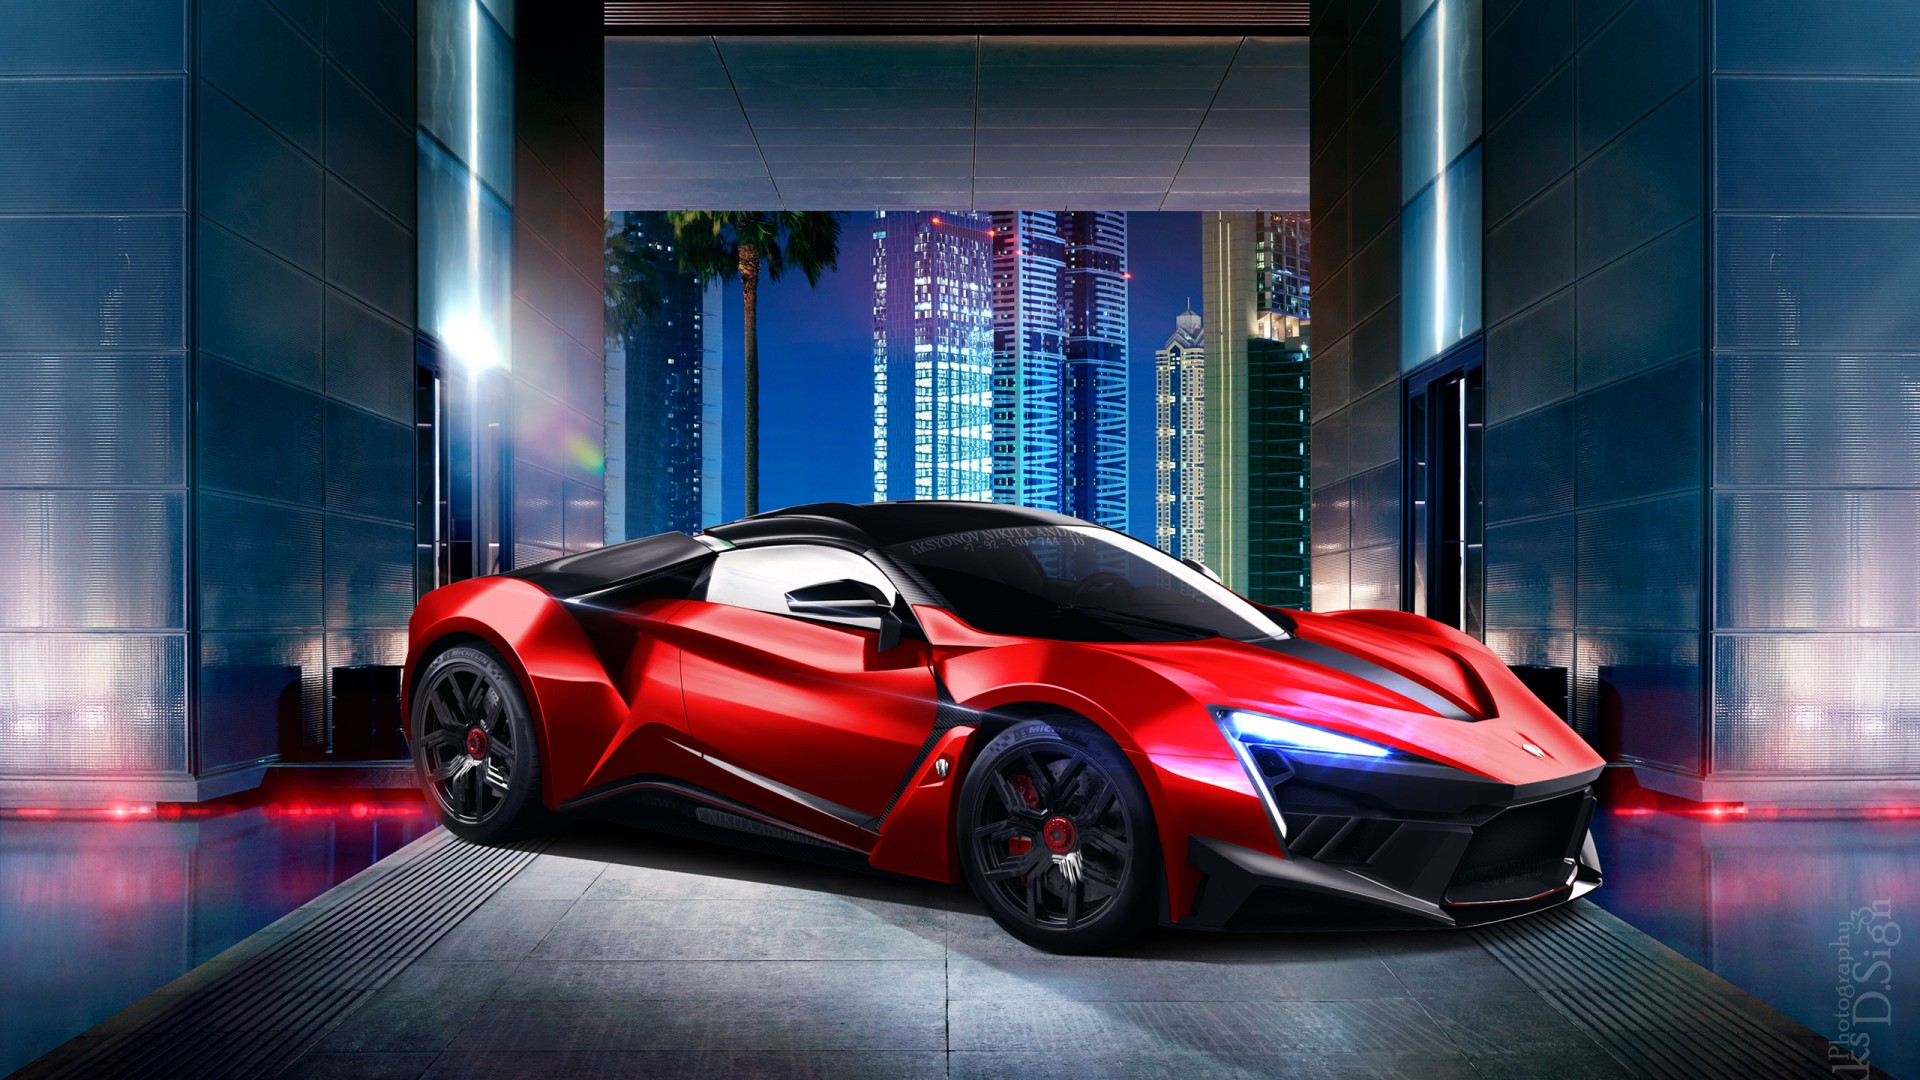 Top Hd Wallpapers Cars Wallpapers Desktop Hd: Fenyr Supersport Spicy Dessert3 Wallpaper